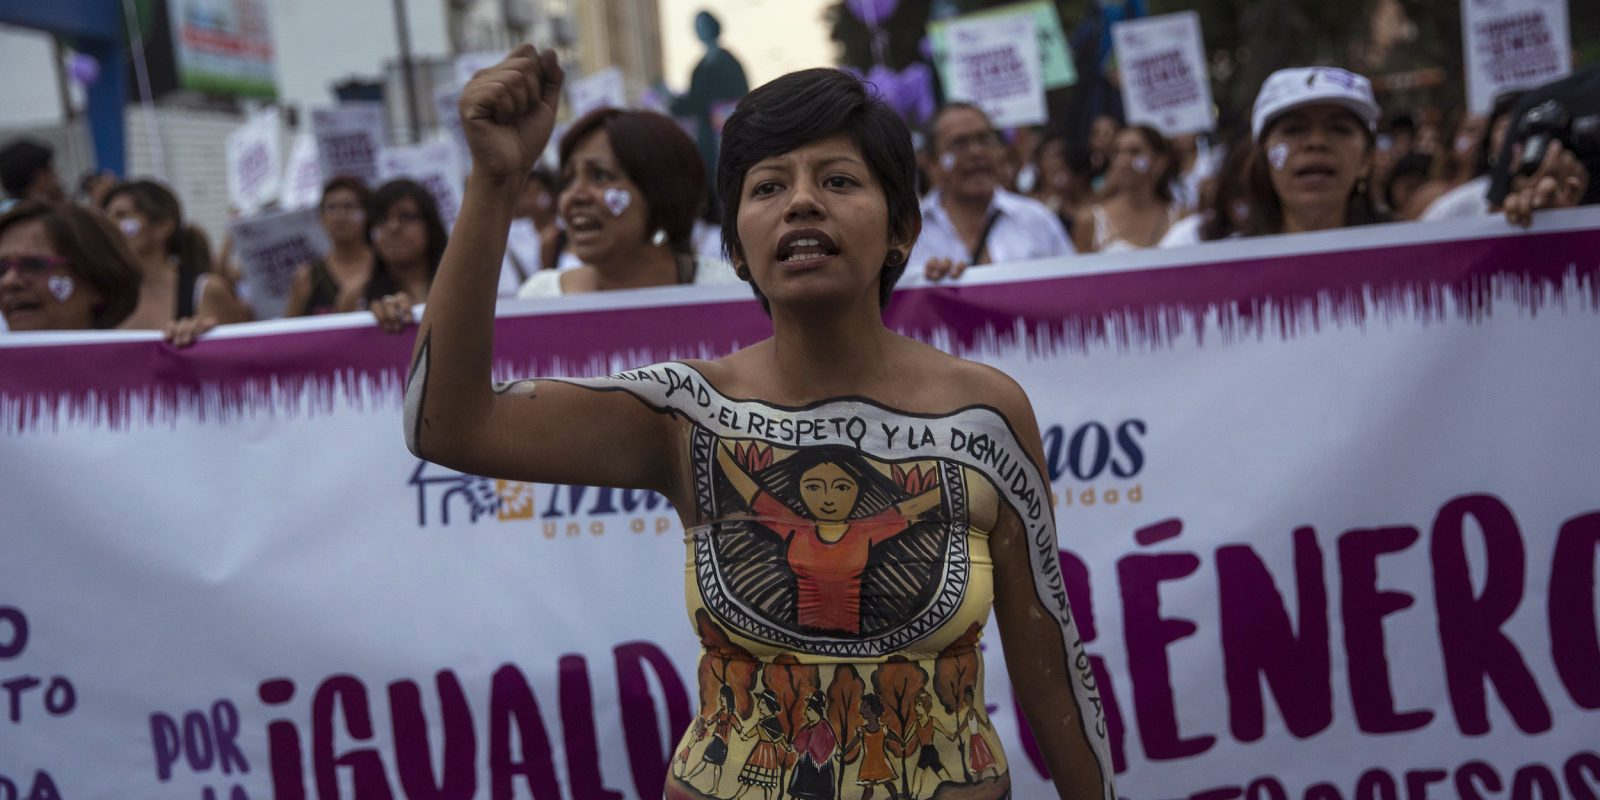 © Copyright 2017 The Associated Press. All rights reserved.. Imagen Por: Una mujer lidera una marcha del Día Internacional de la Mujer en Lima, Perú. / Foto: AP